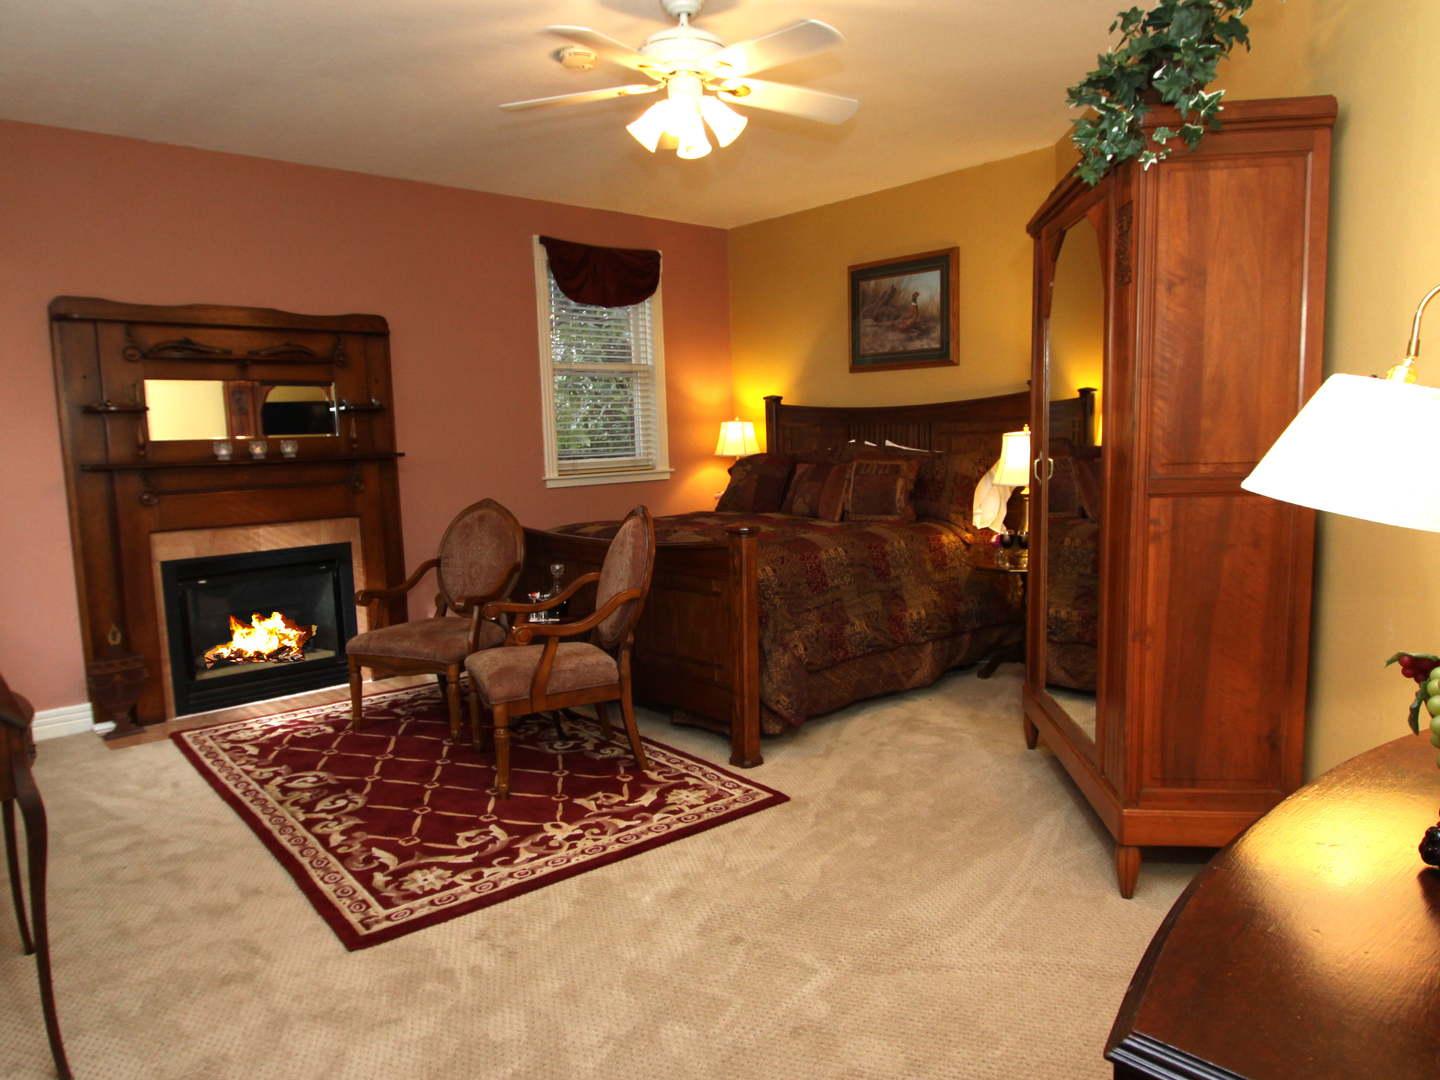 A living room filled with furniture and a fire place at Hennessey House.